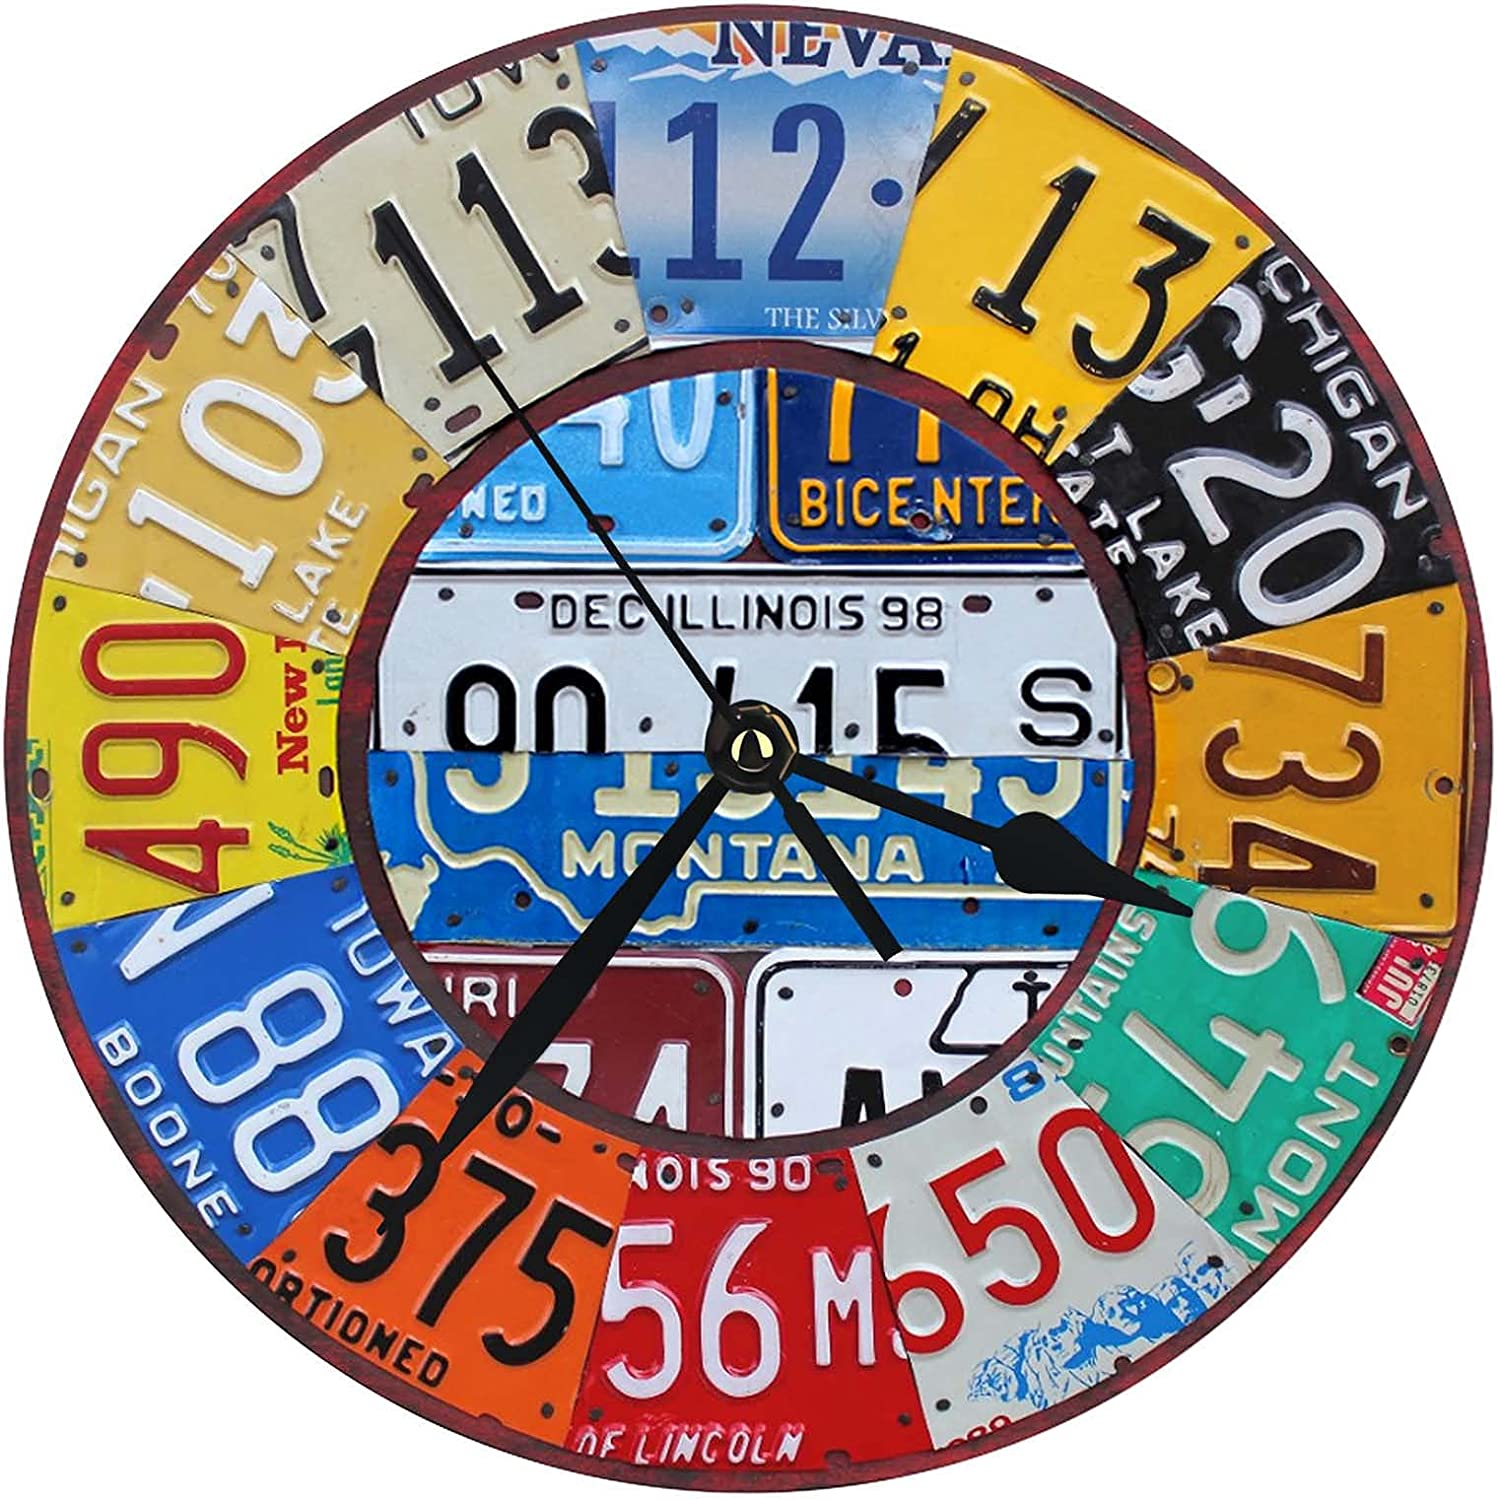 License Plate Wall Clock 12 Inch Vintage Decor Battery Operated Decorations for Kitchen,Living Room,Farmhouse,Office